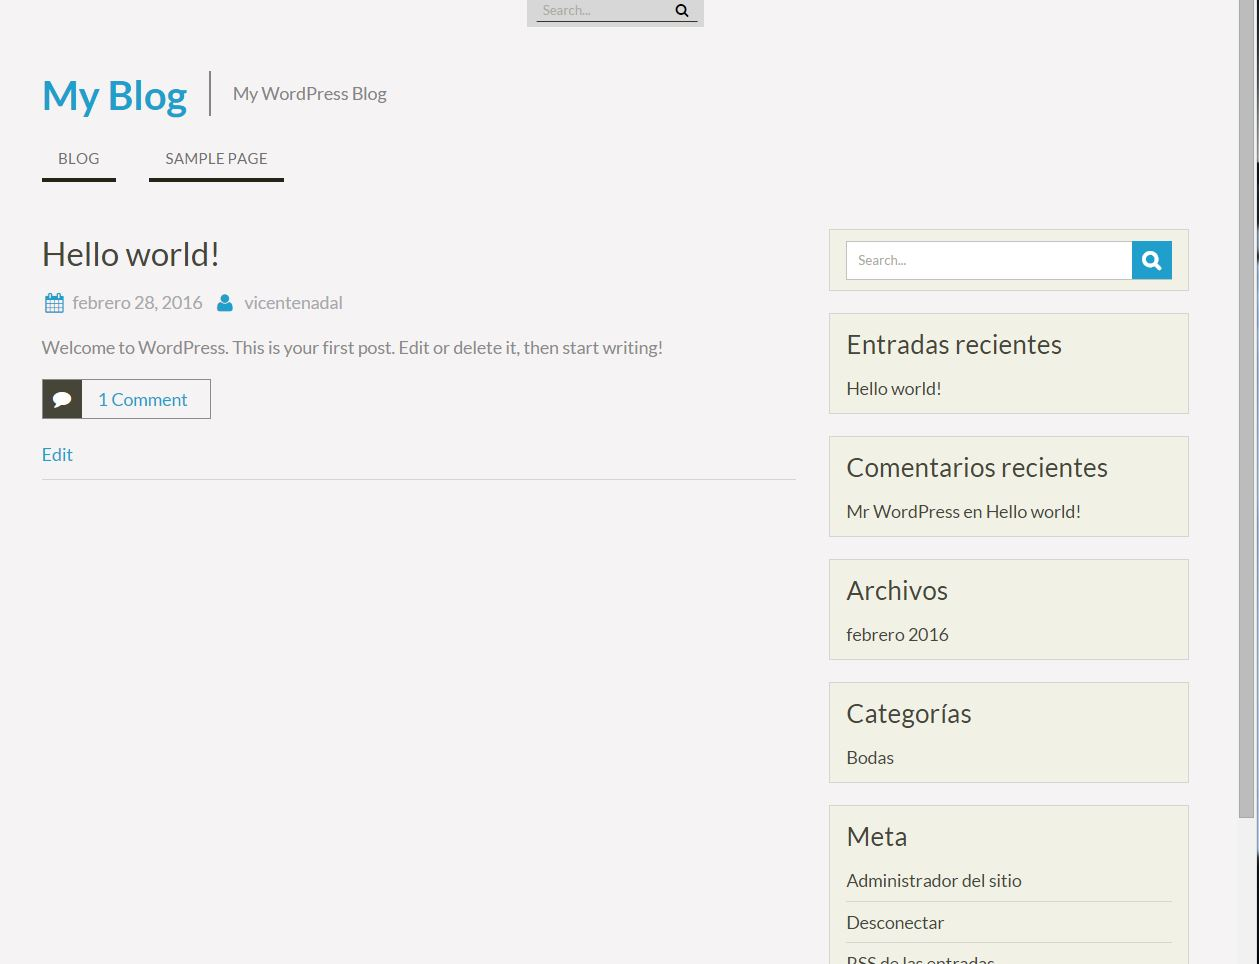 instalar blog 17 - wordpress para fotógrafos - marketing vicente nadal